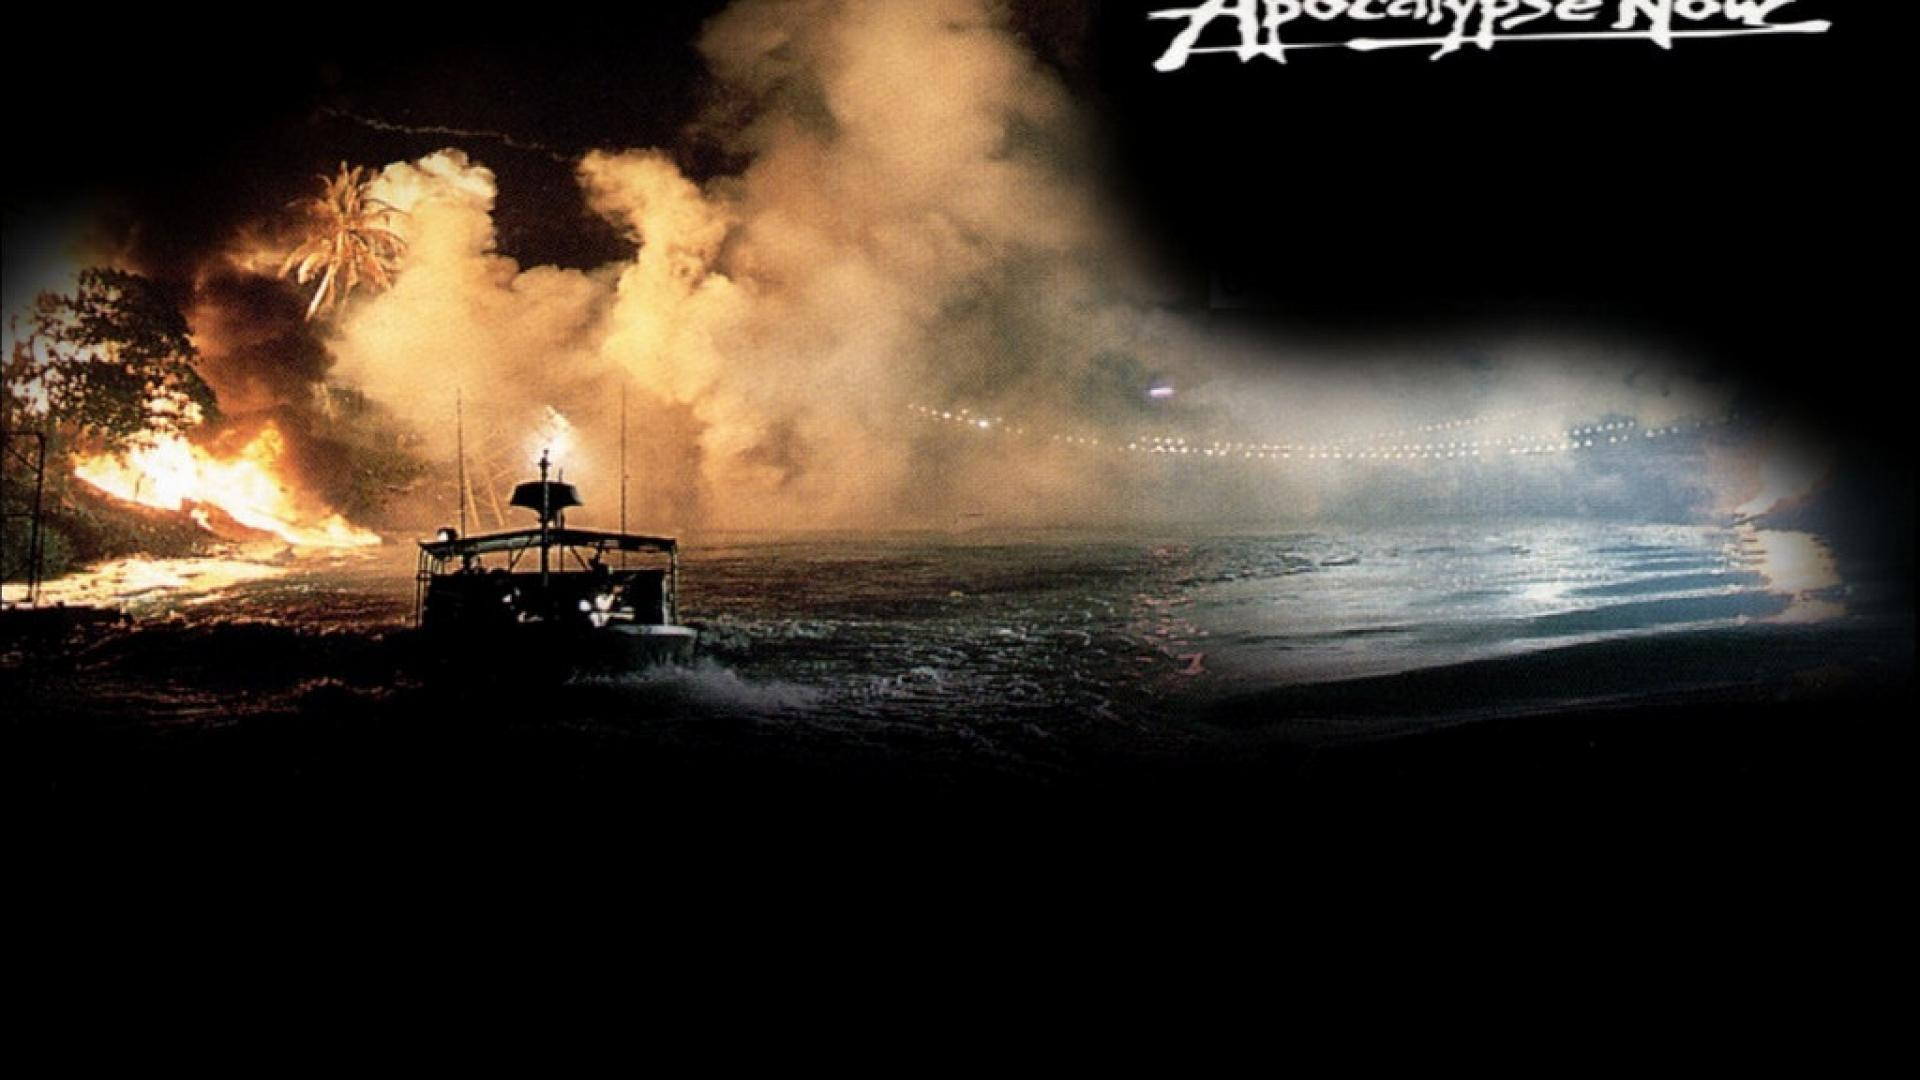 Apocalypse Now Wallpapers 1920x1080